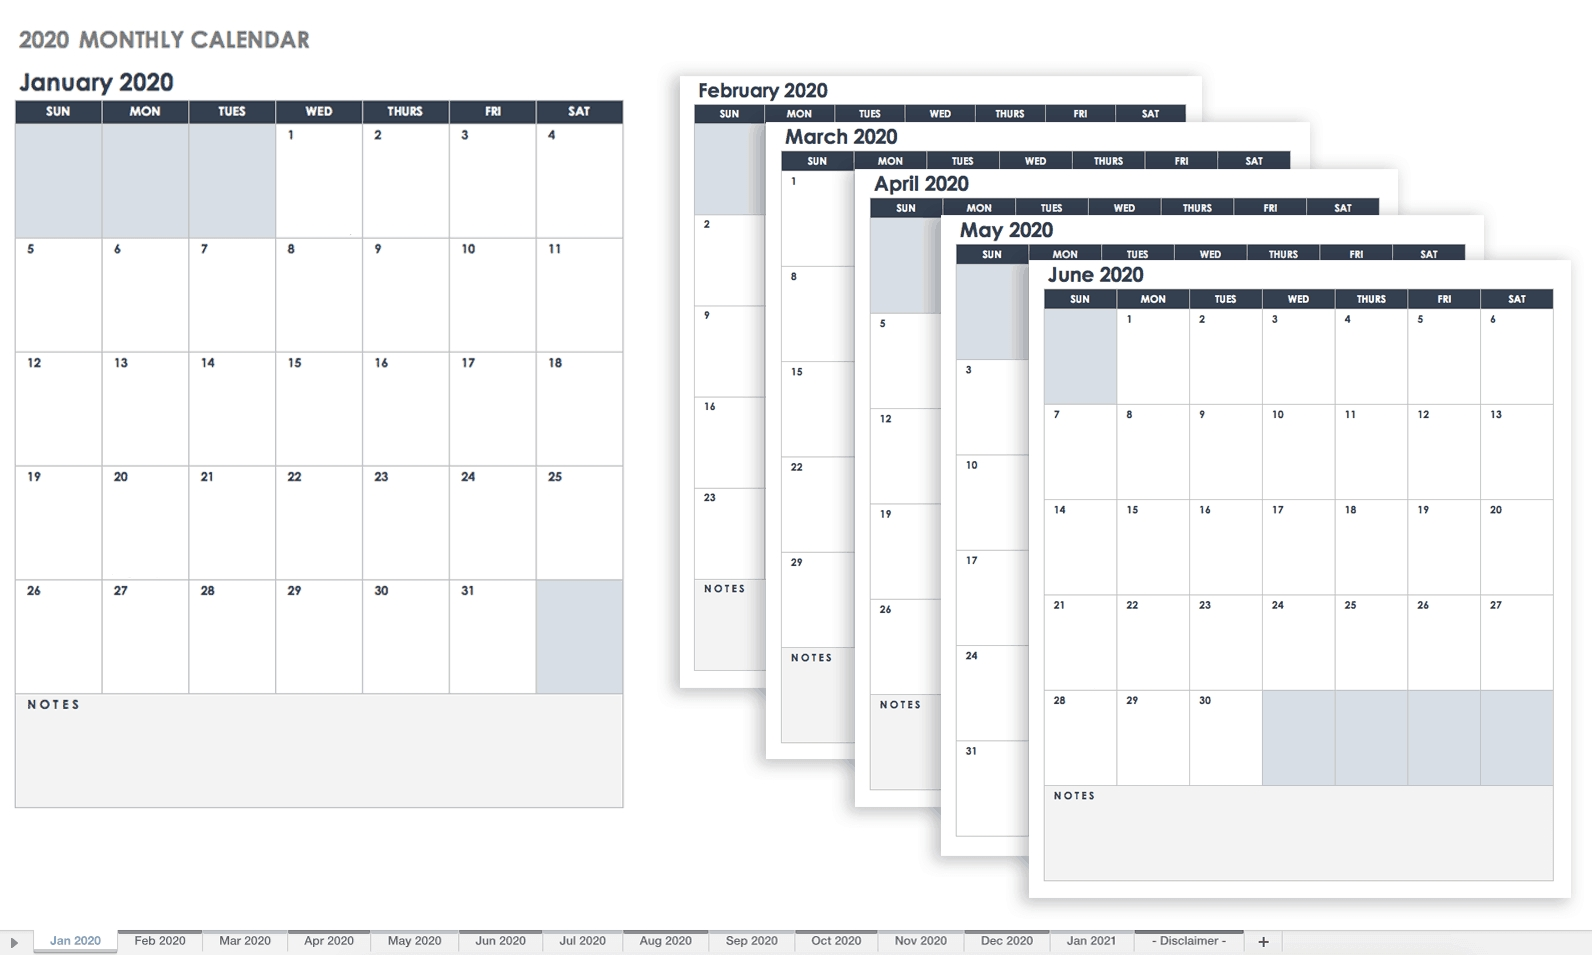 Free Google Calendar Templates | Smartsheet for More Calendar Templates: 2019 2020 Web Calendar